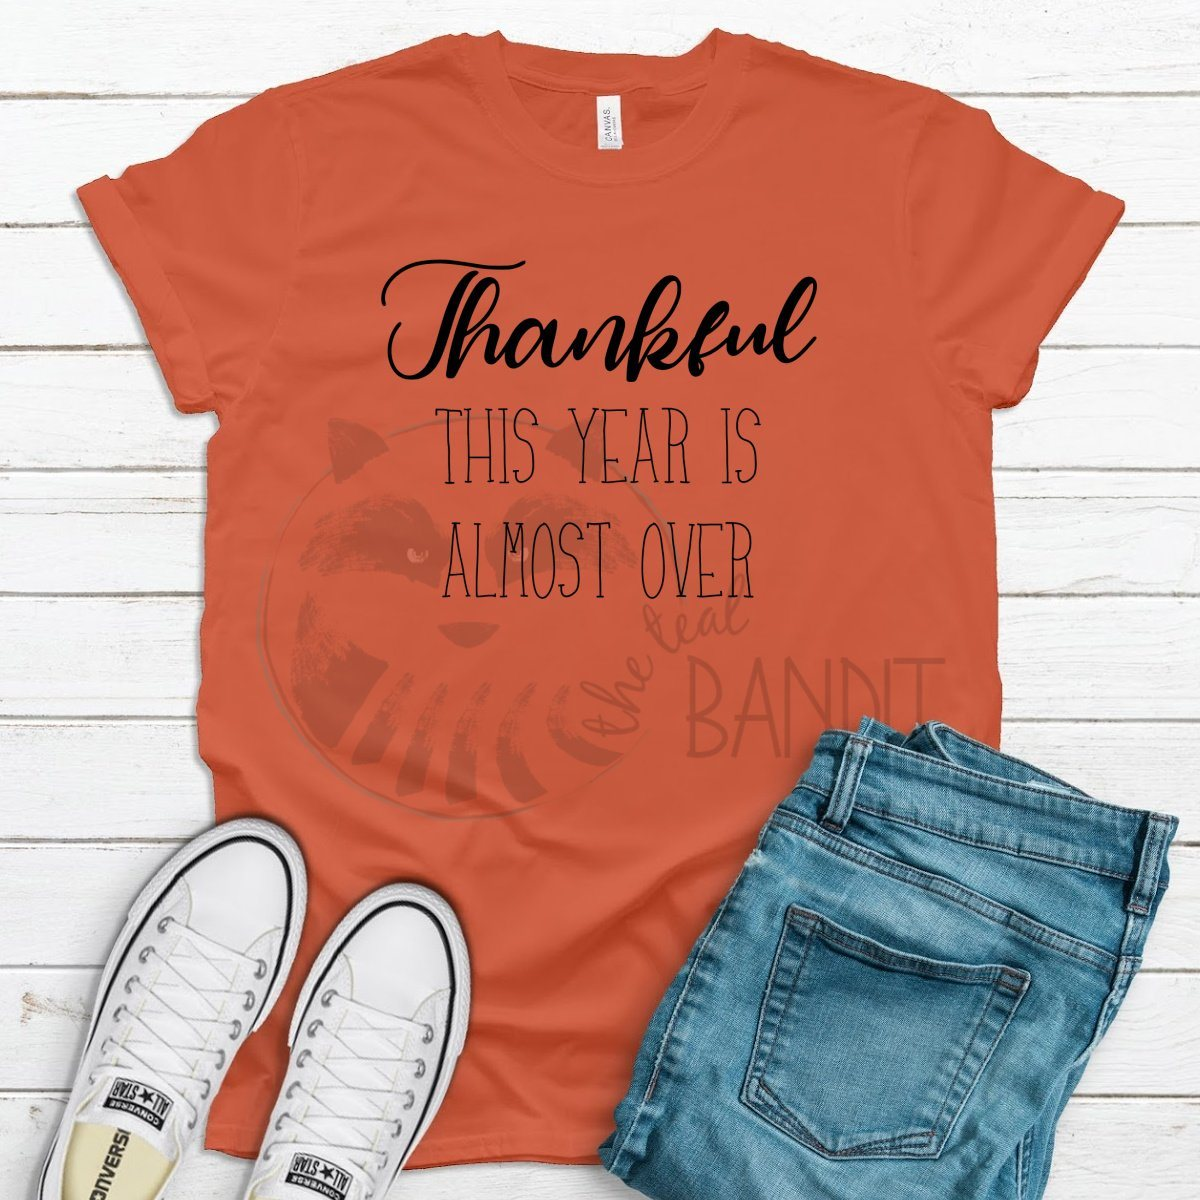 """Thankful this year is almost over"" tee shirt Adult Tee Shirt The Teal Bandit"